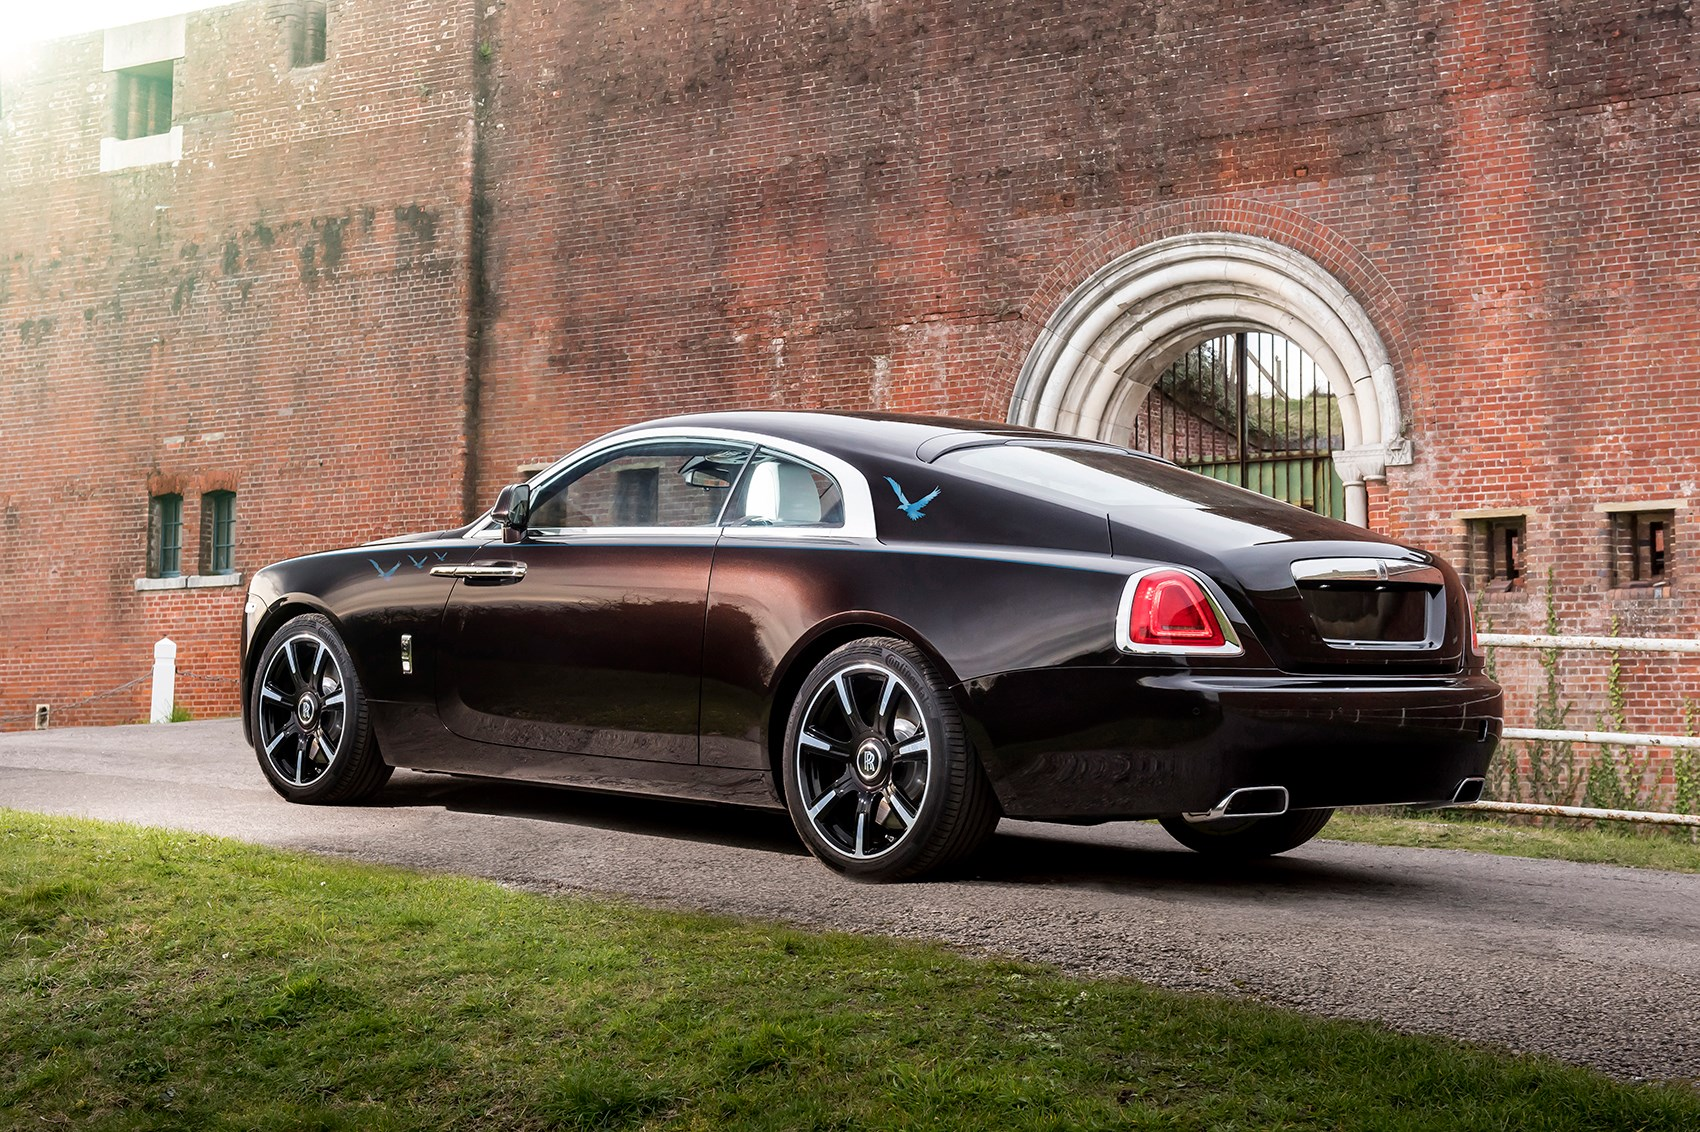 rock n roller rolls royce wraith inspired by british music specials revealed car magazine. Black Bedroom Furniture Sets. Home Design Ideas